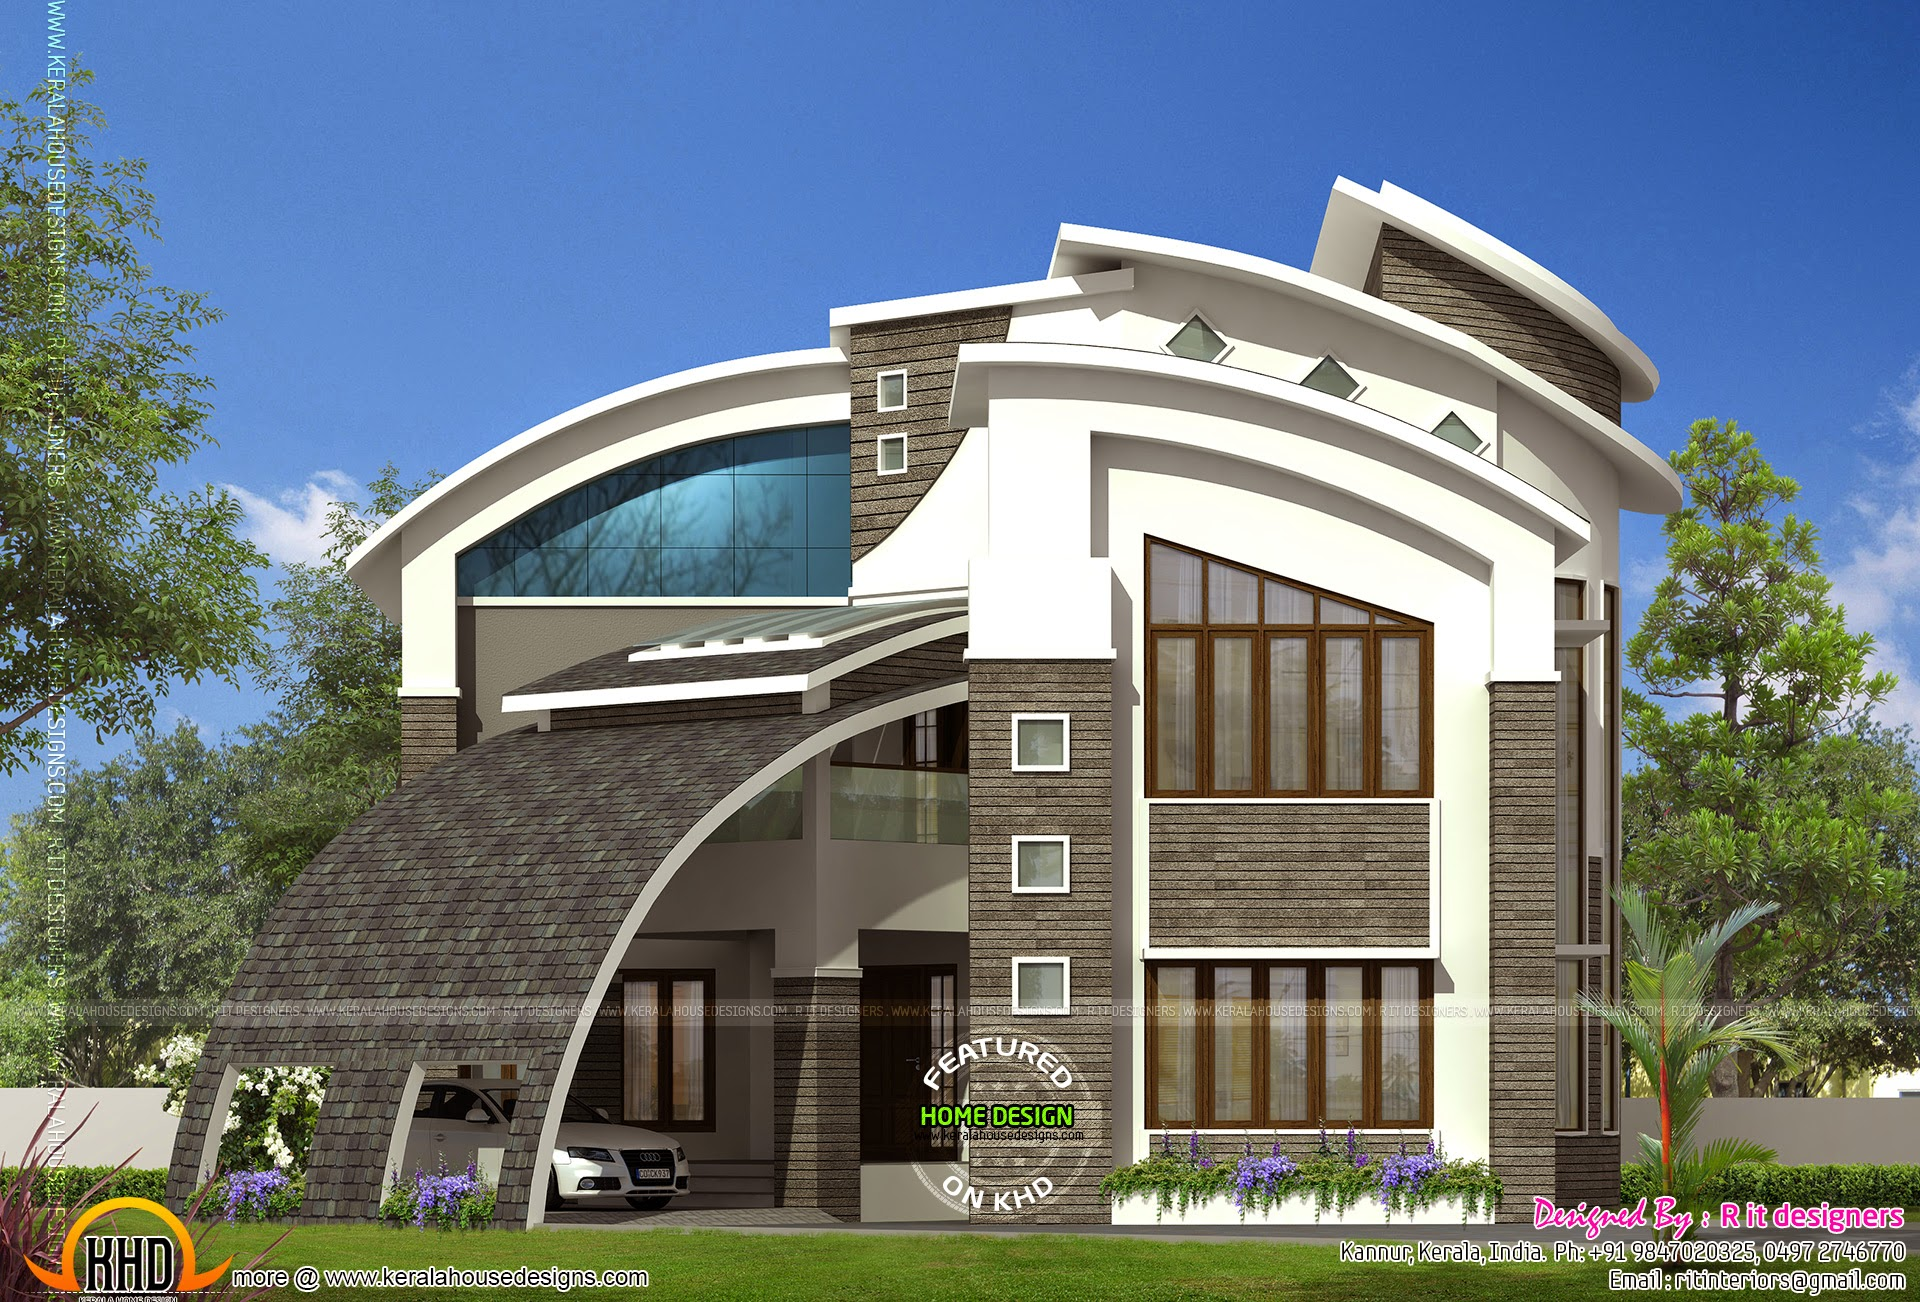 Modern Contemporary House Design Kerala Home Design And Floor Plans